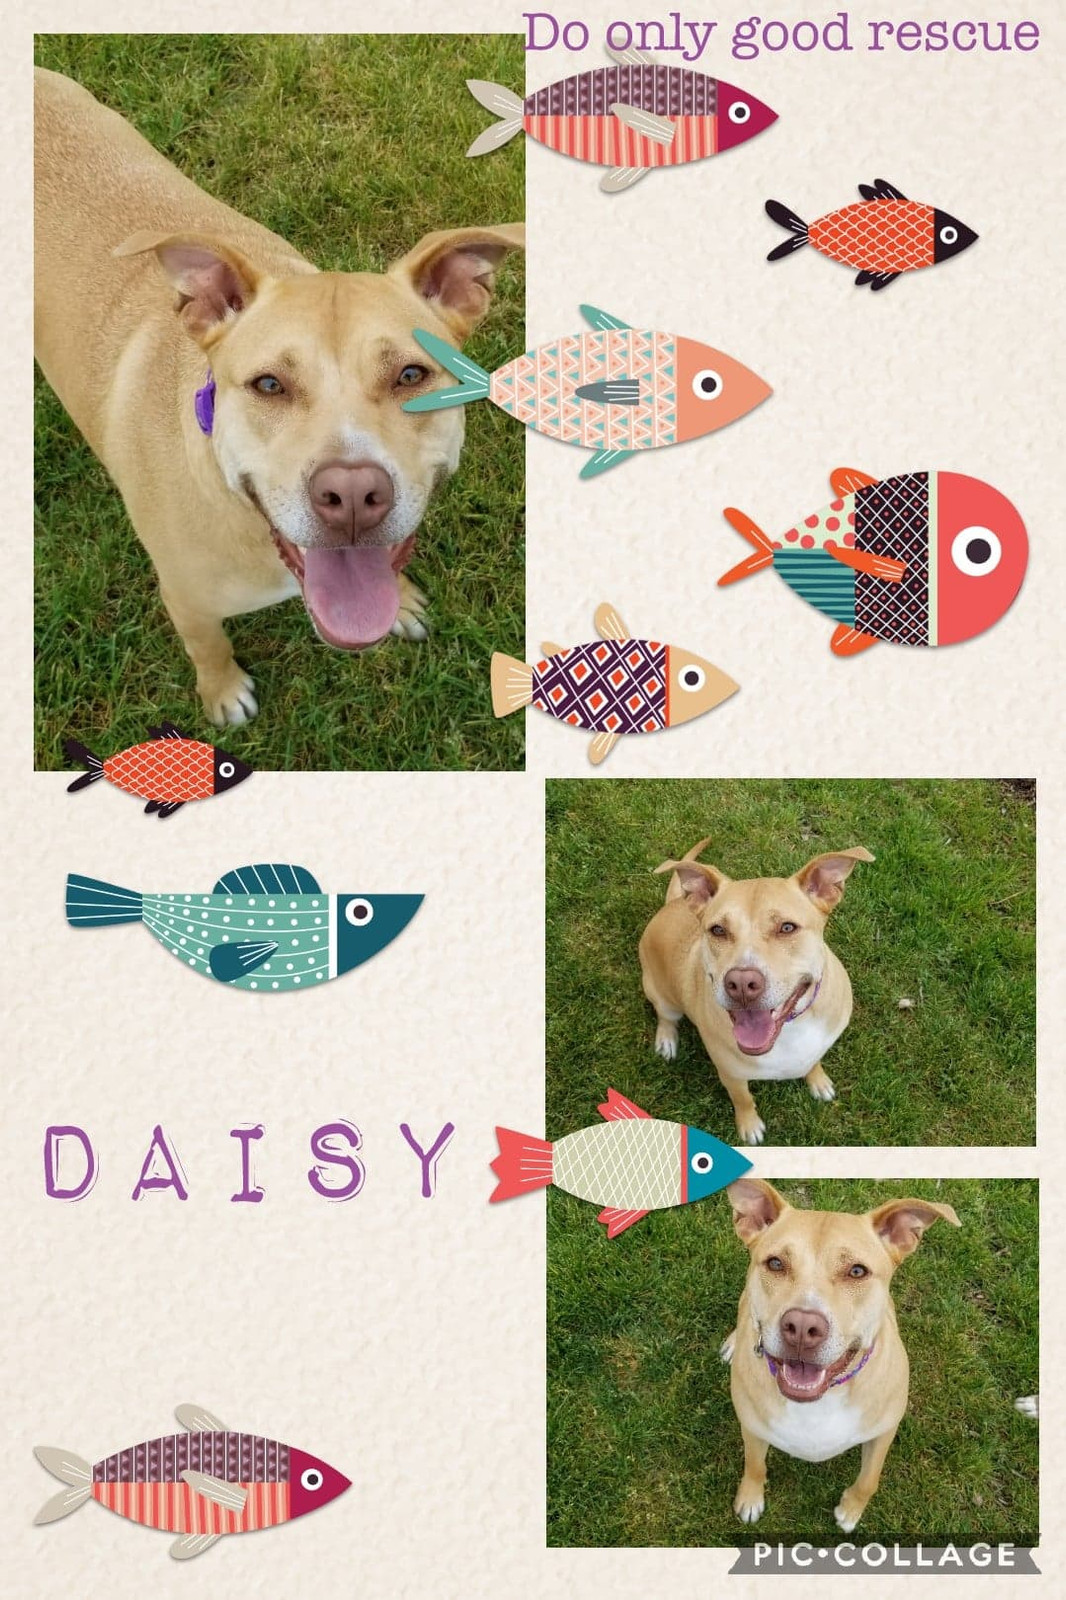 Hi Im Daisy And I Am A Very Sweet Dog Came In With My Buddy Jake 314762 We Really Like Each Other Are Both Big Dogs So Ample Space